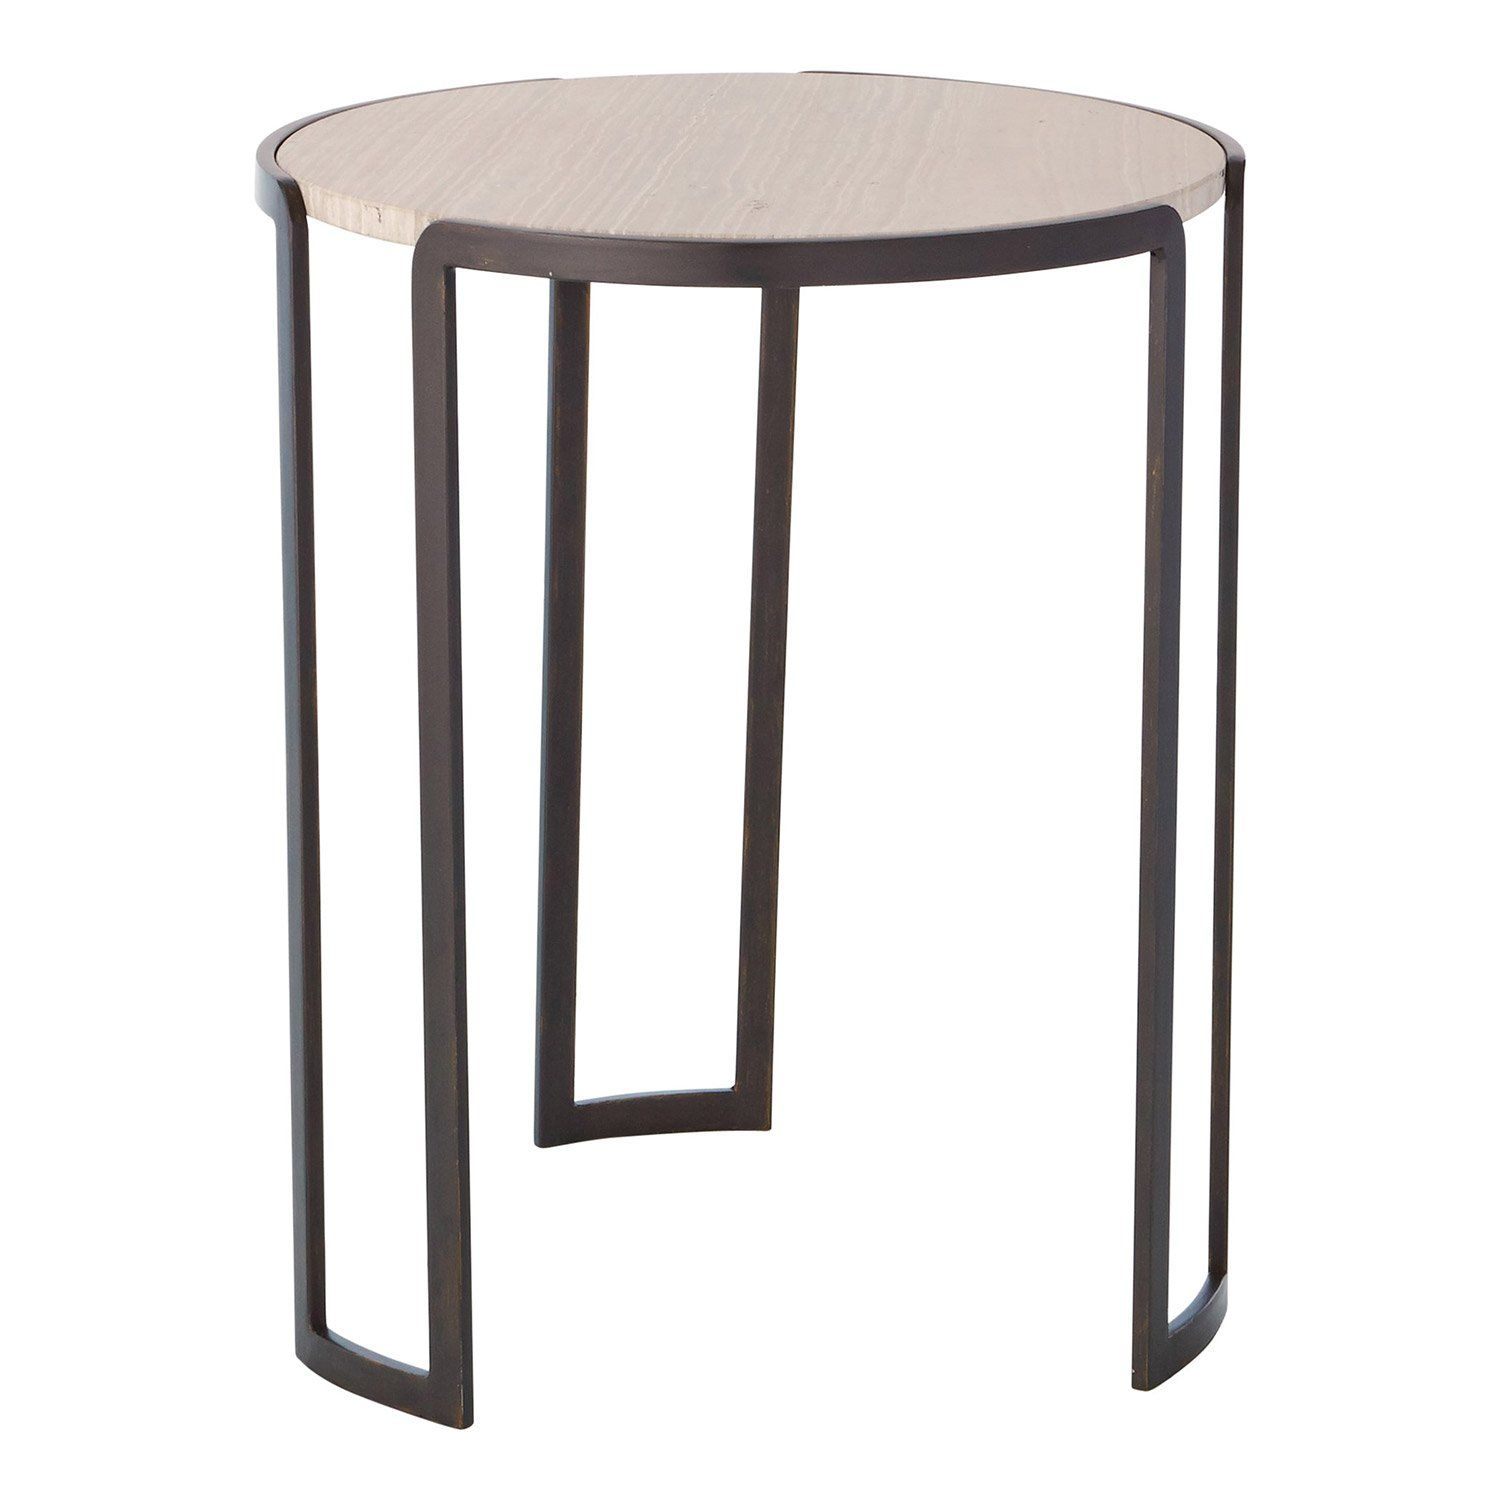 1500x1500 Studio A Channel Accent Table